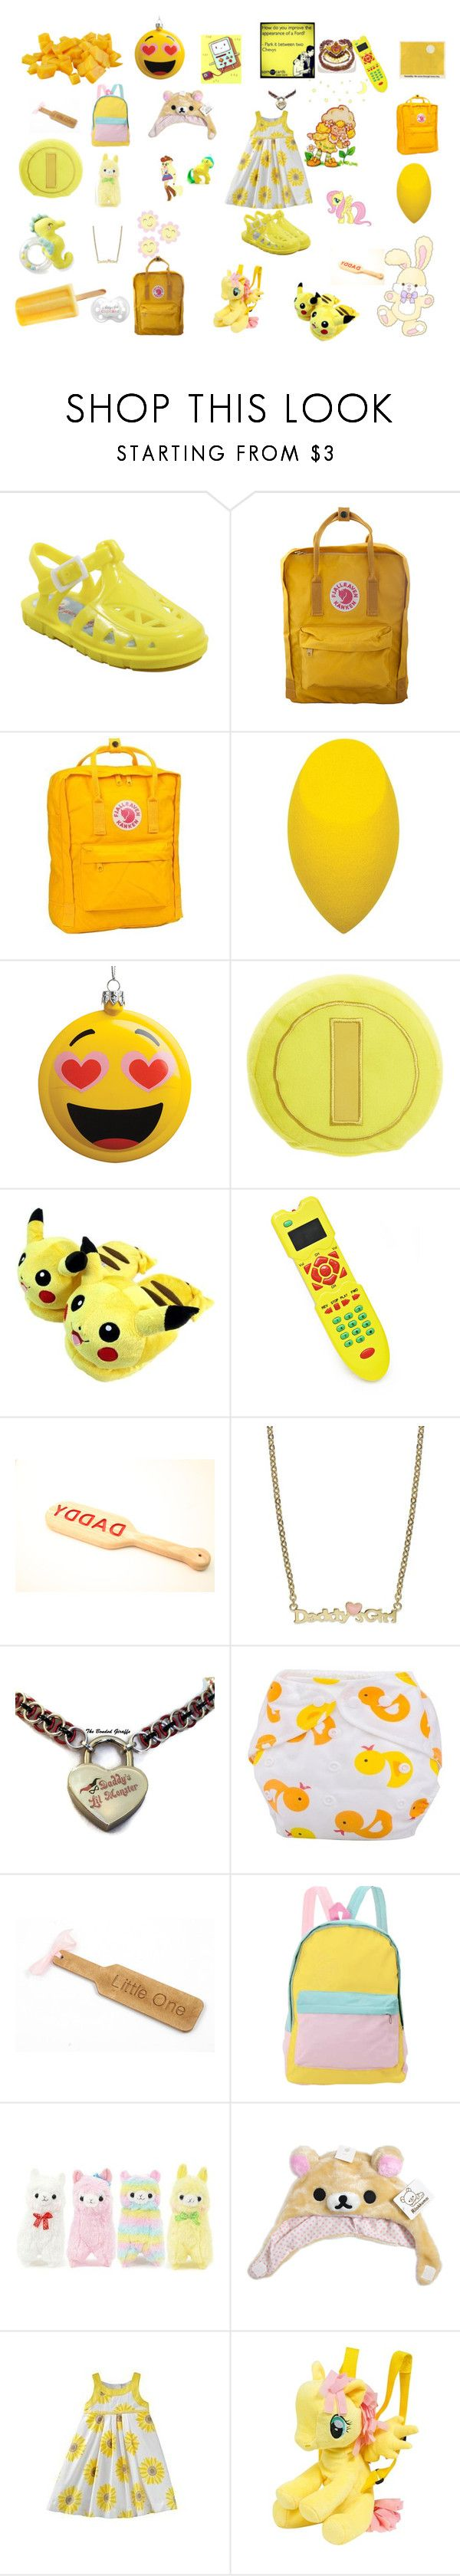 """""""sunny"""" by unicorn-923 ❤ liked on Polyvore featuring George, Fjällräven, Carter's, Nintendo, Disney, Lily Nily, cutekawaii, My Little Pony and Heartstrings"""